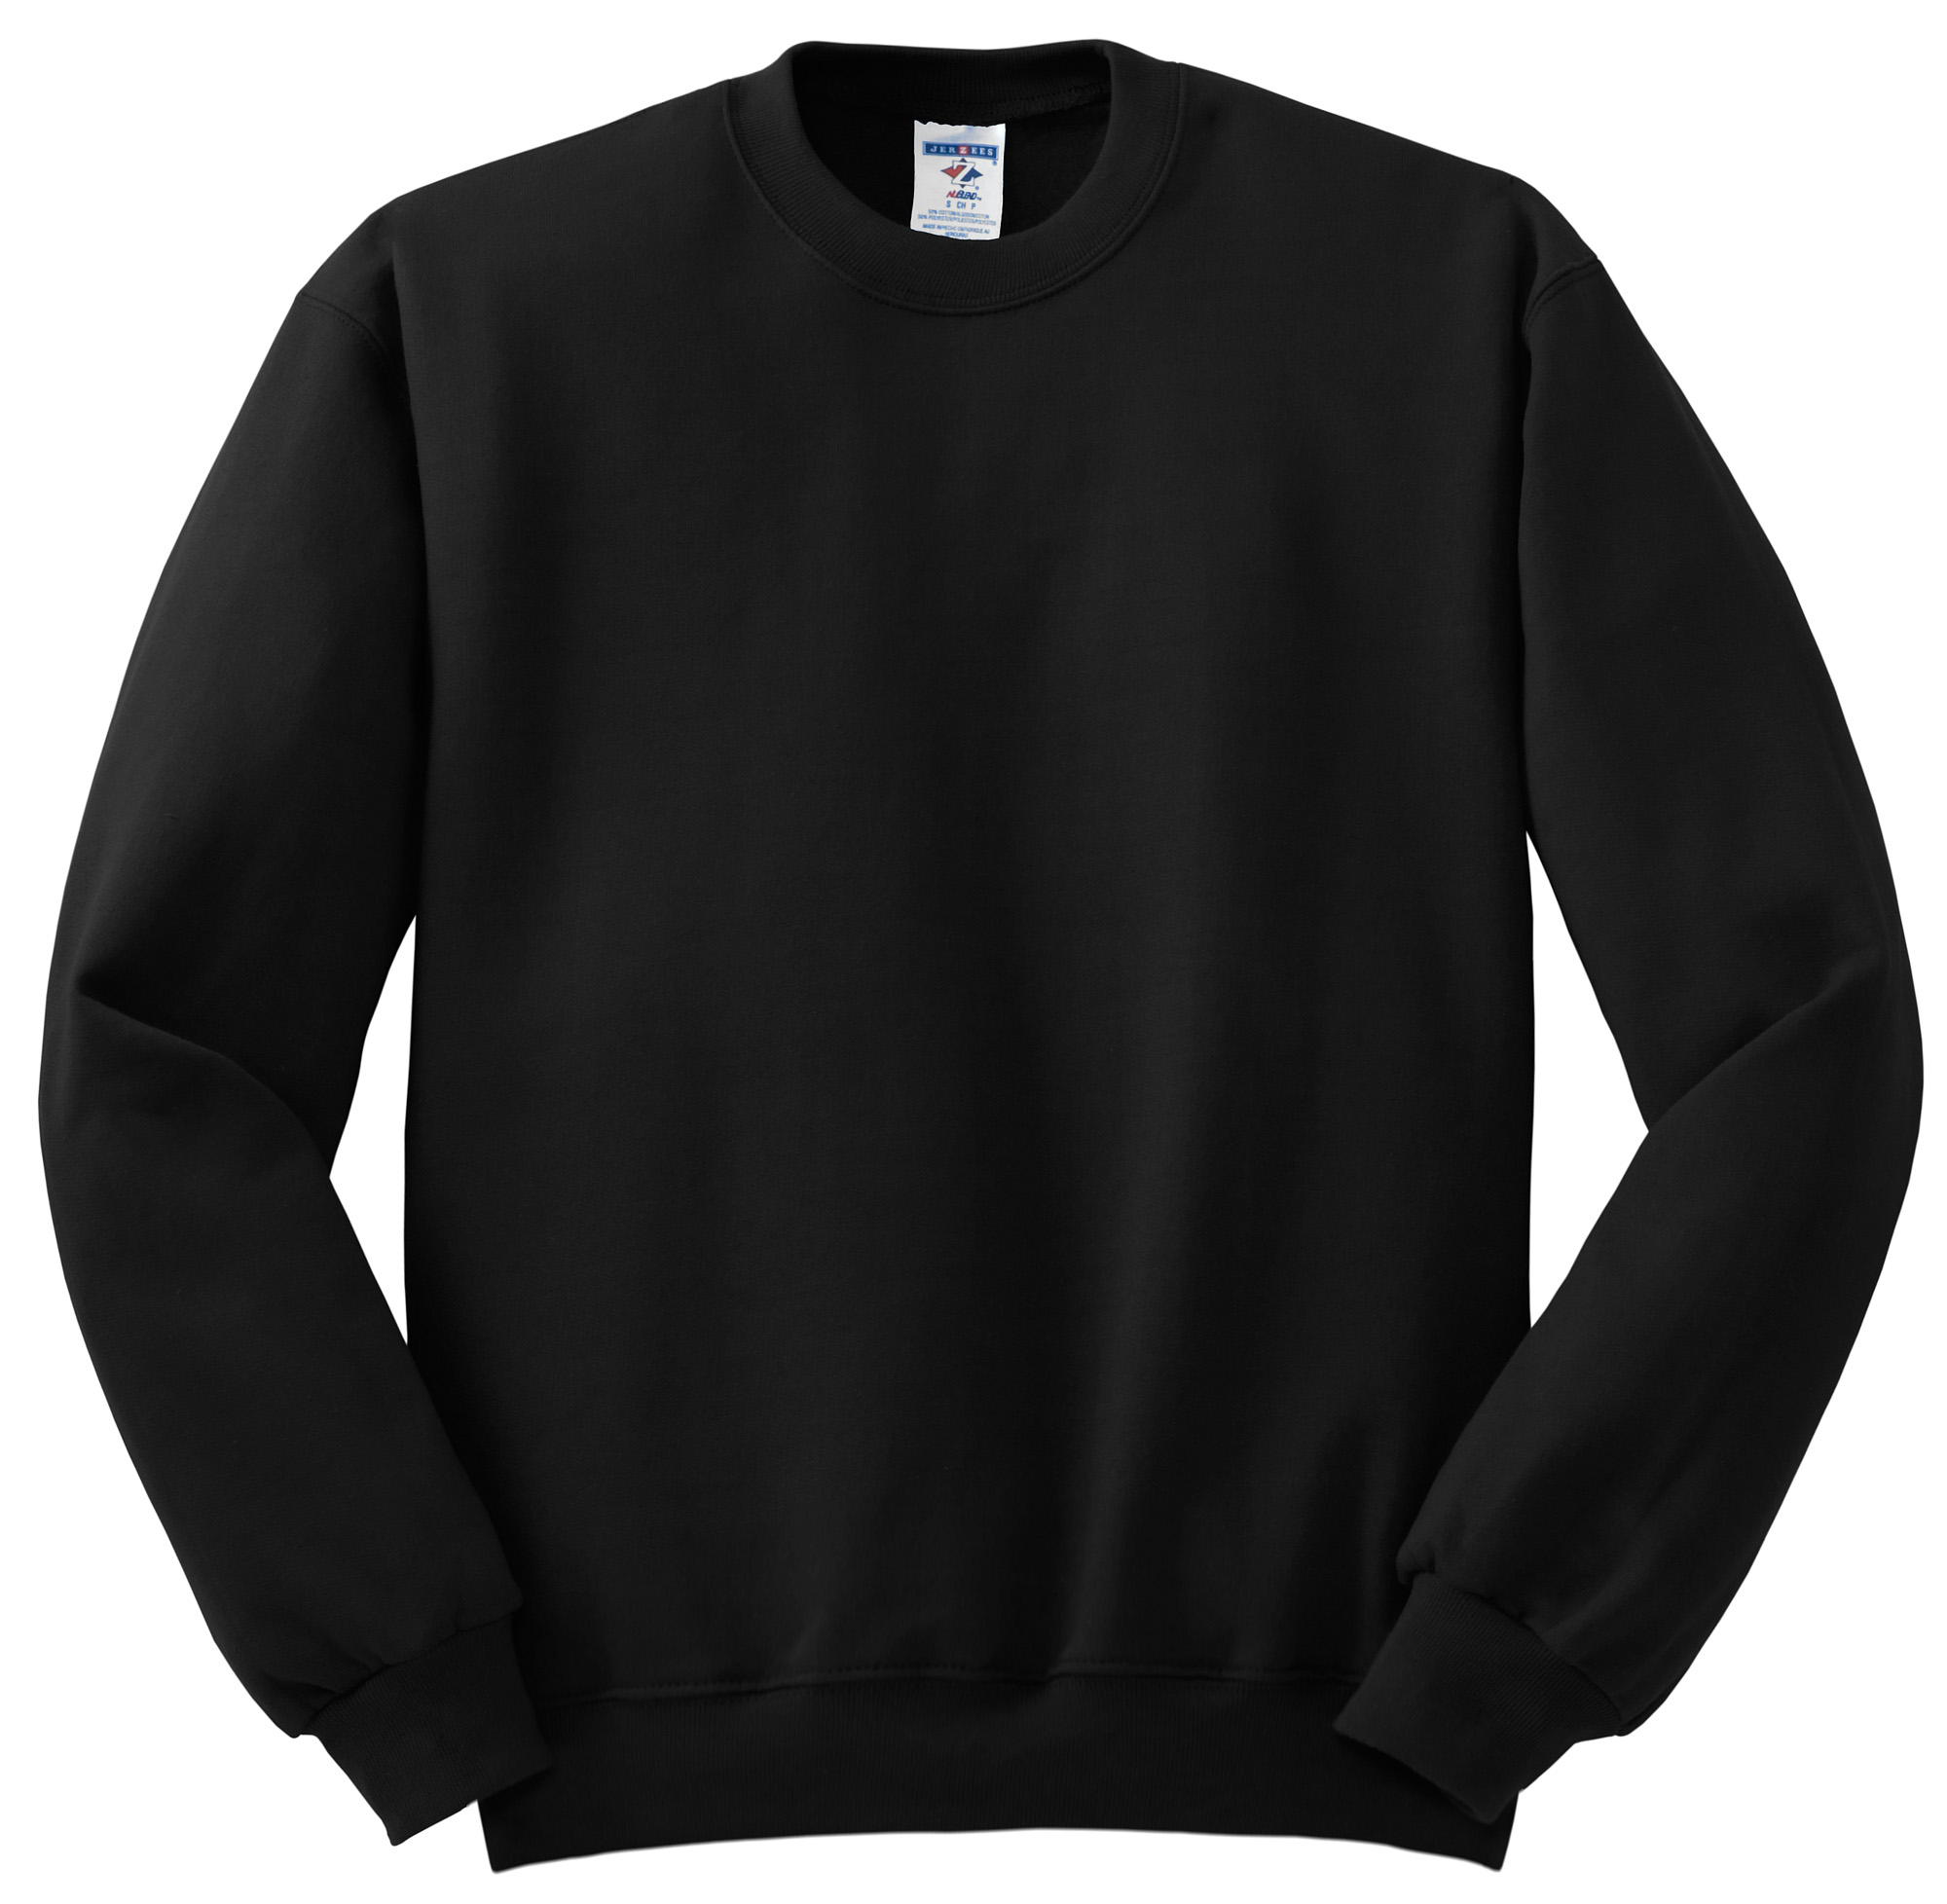 jerzees nublend crewneck sweatshirt 562m supply theory